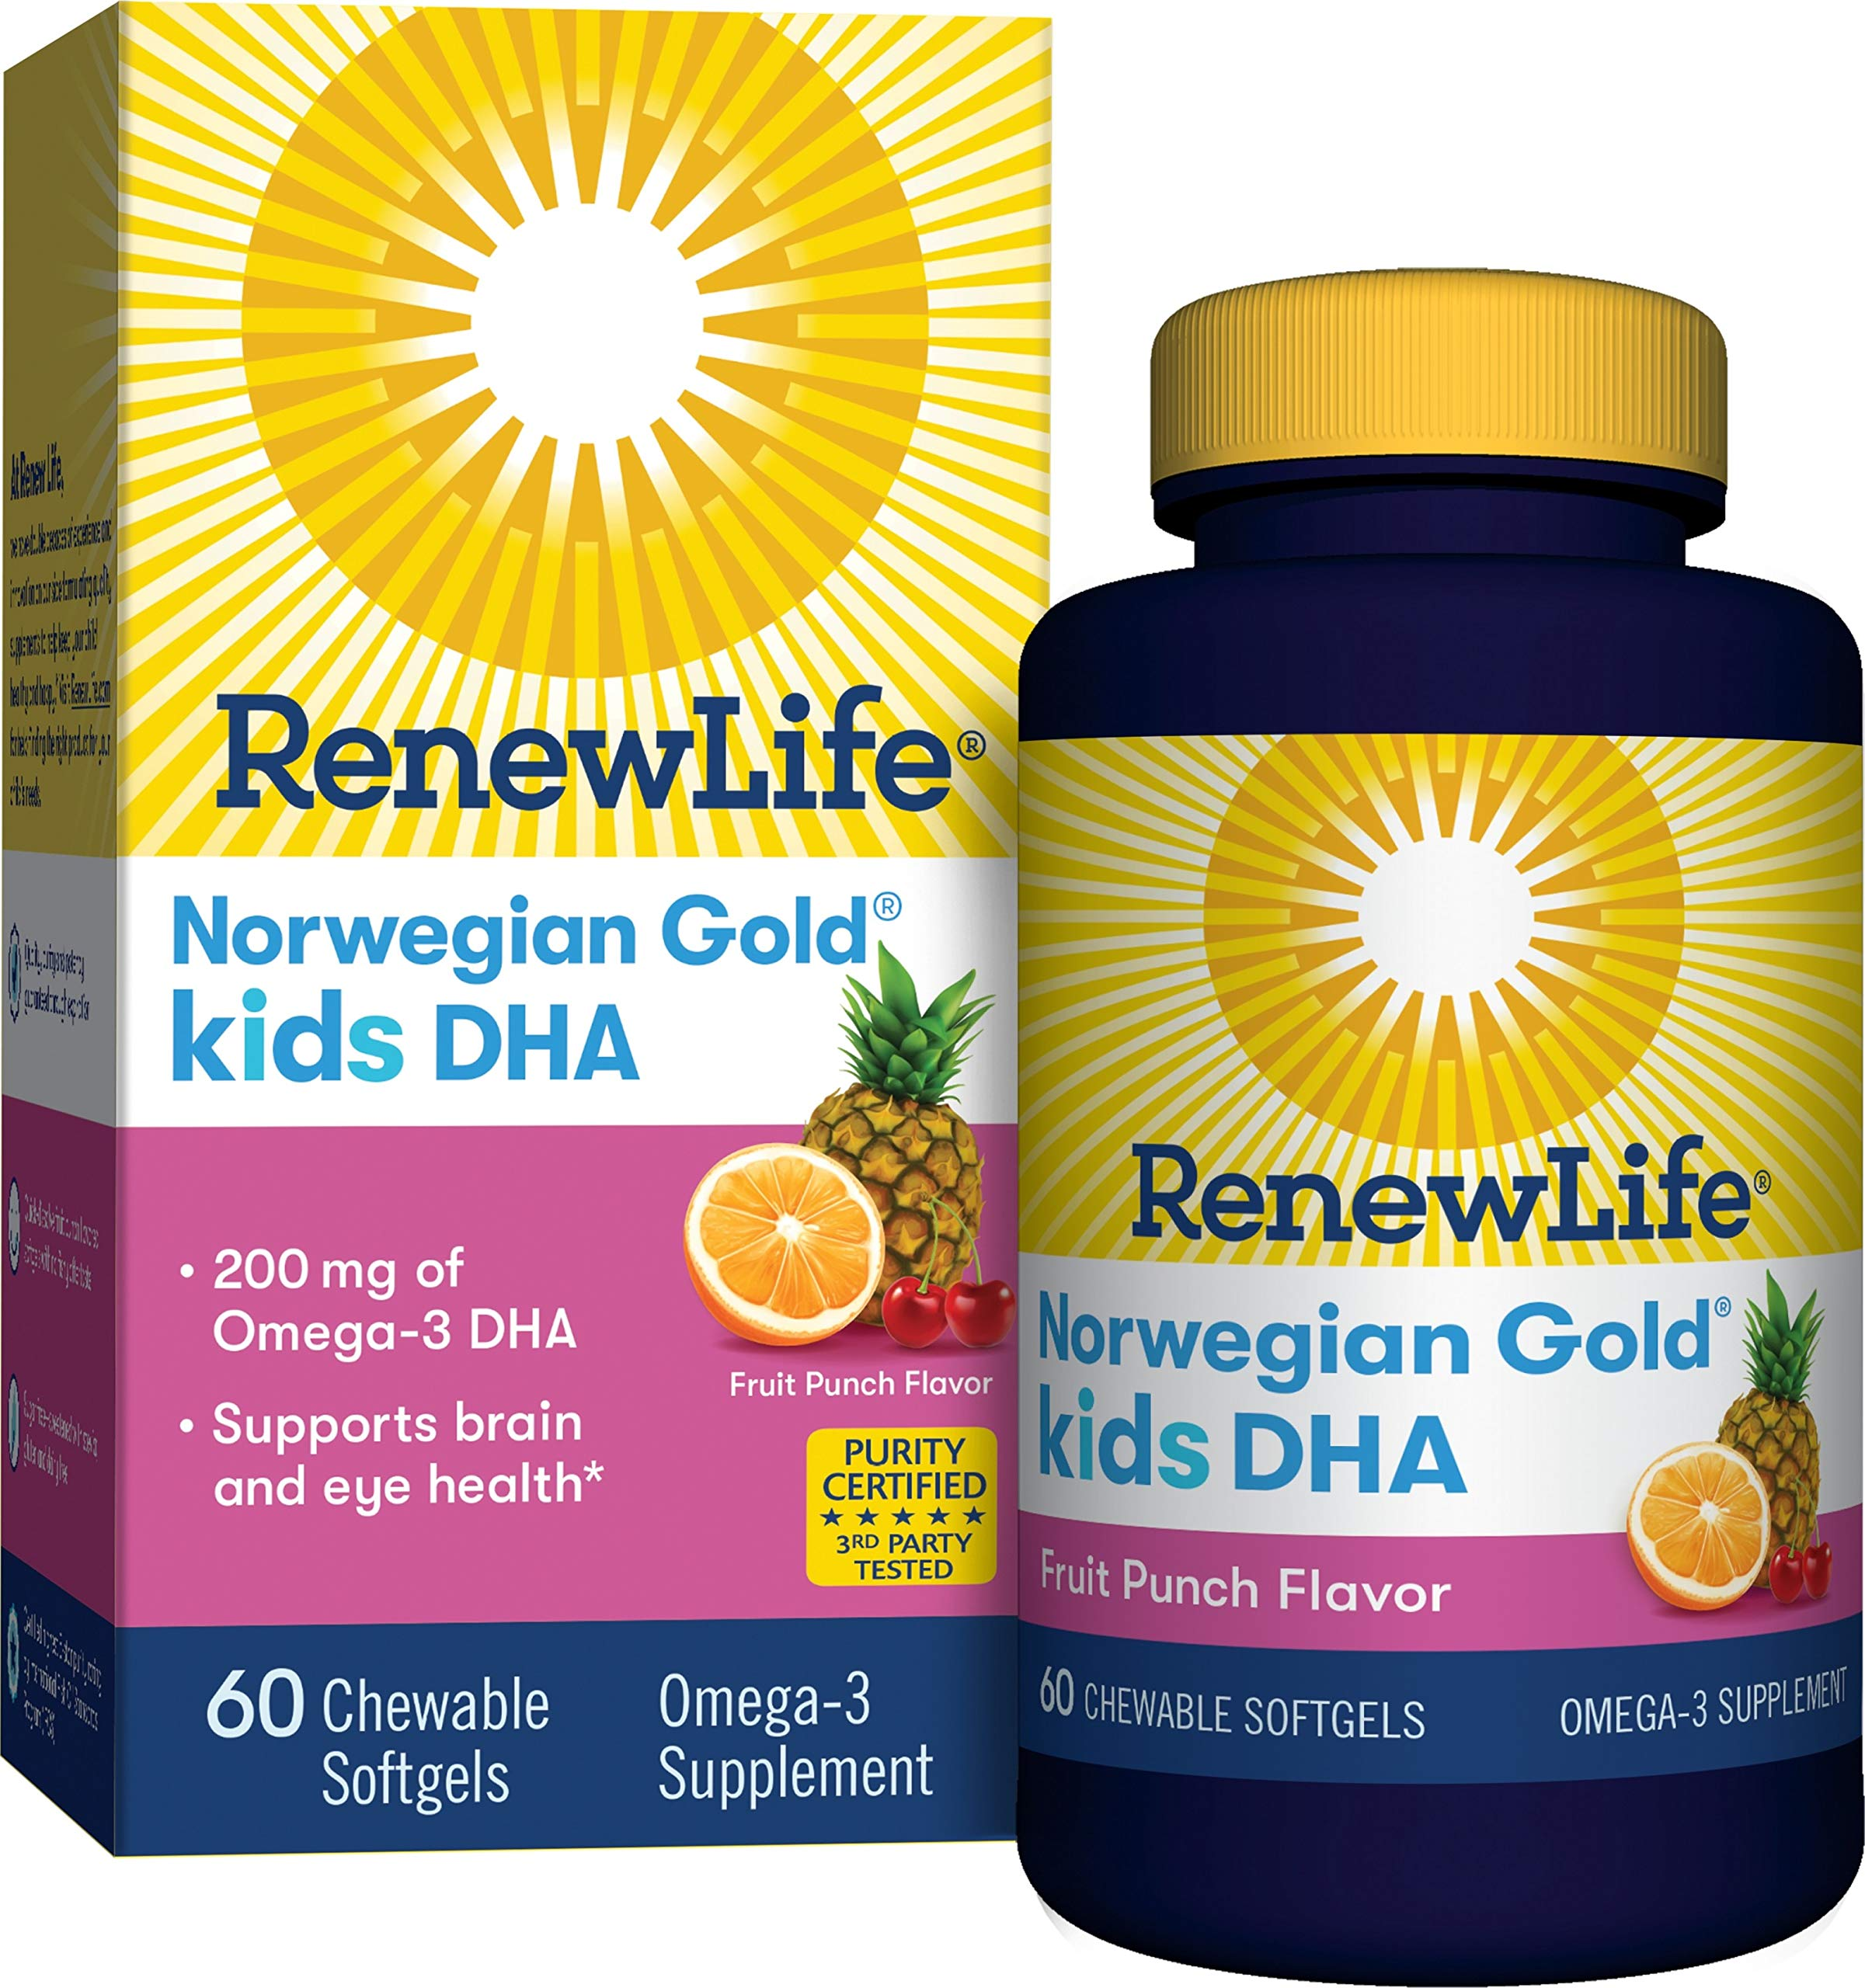 Renew Life NG Kids DHA Gels, 60 Count by Renew Life